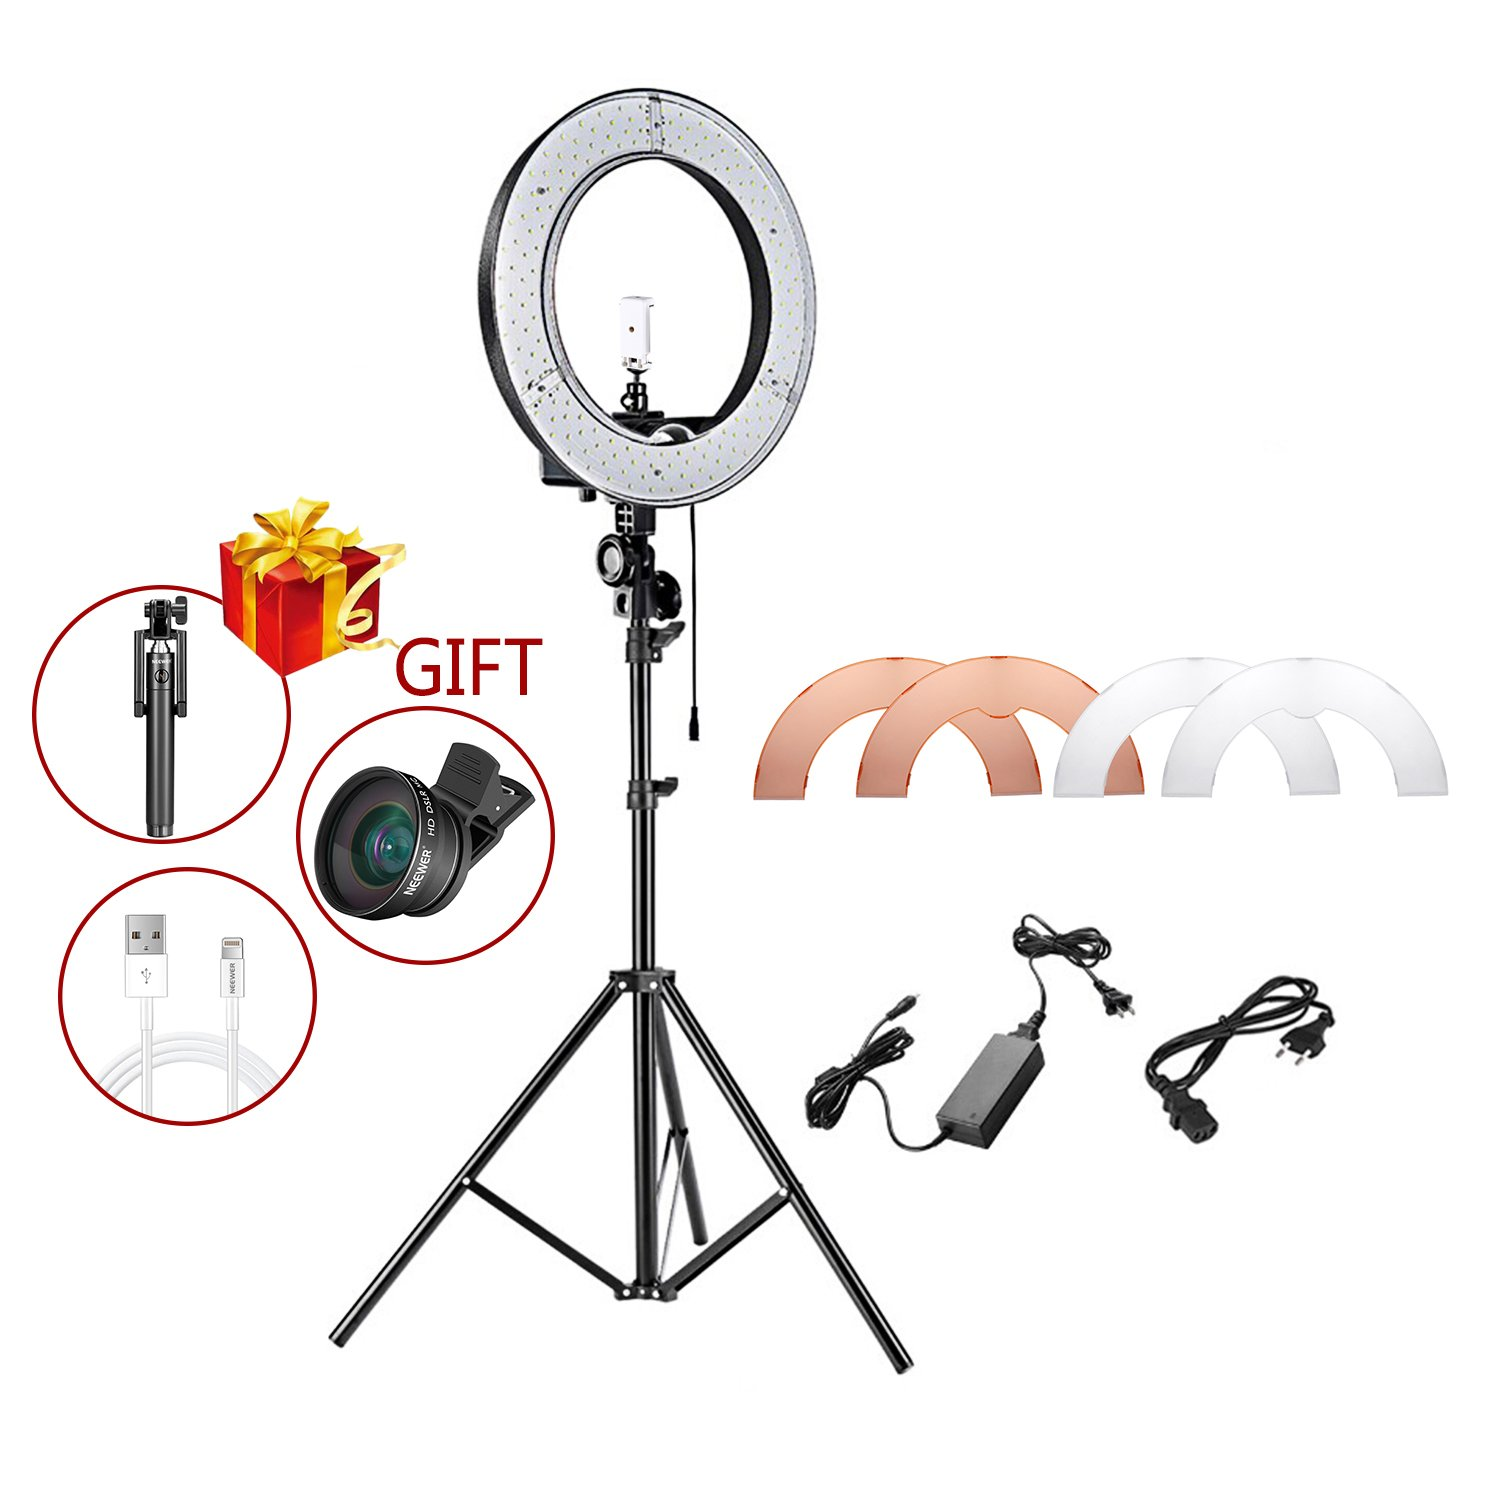 Neewer 12-inch Inner/14-inch Outer LED Ring Light and Stand Kit for Camera and Cellphone YouTube Video Shooting,Makeup Tutorials and Selfie Filming(PLUS: Selfie Stick,Phone Lens,Cable for iPhone) by Neewer